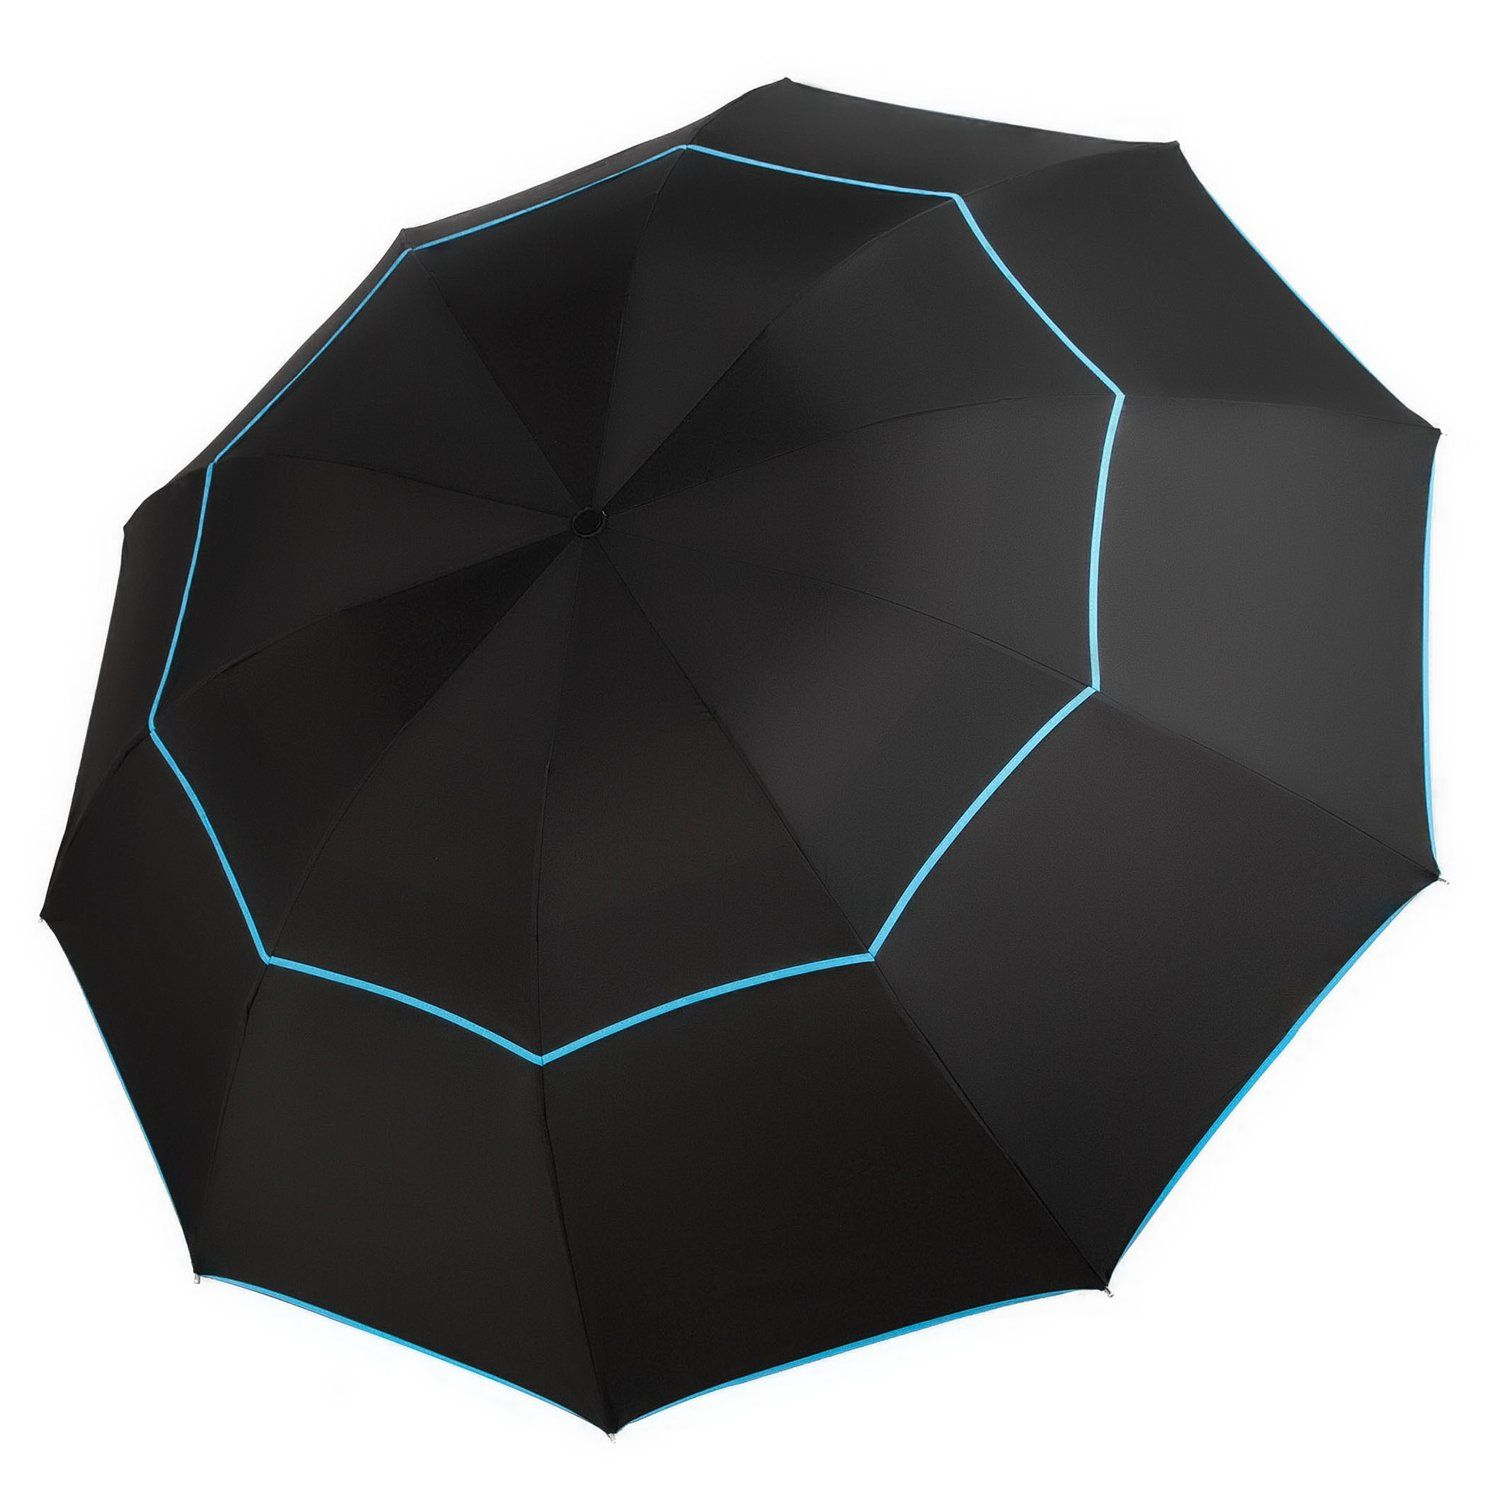 Travel Umbrella 63 Inch Extra Large Canopy Compact Double Waterproof For Outdoor